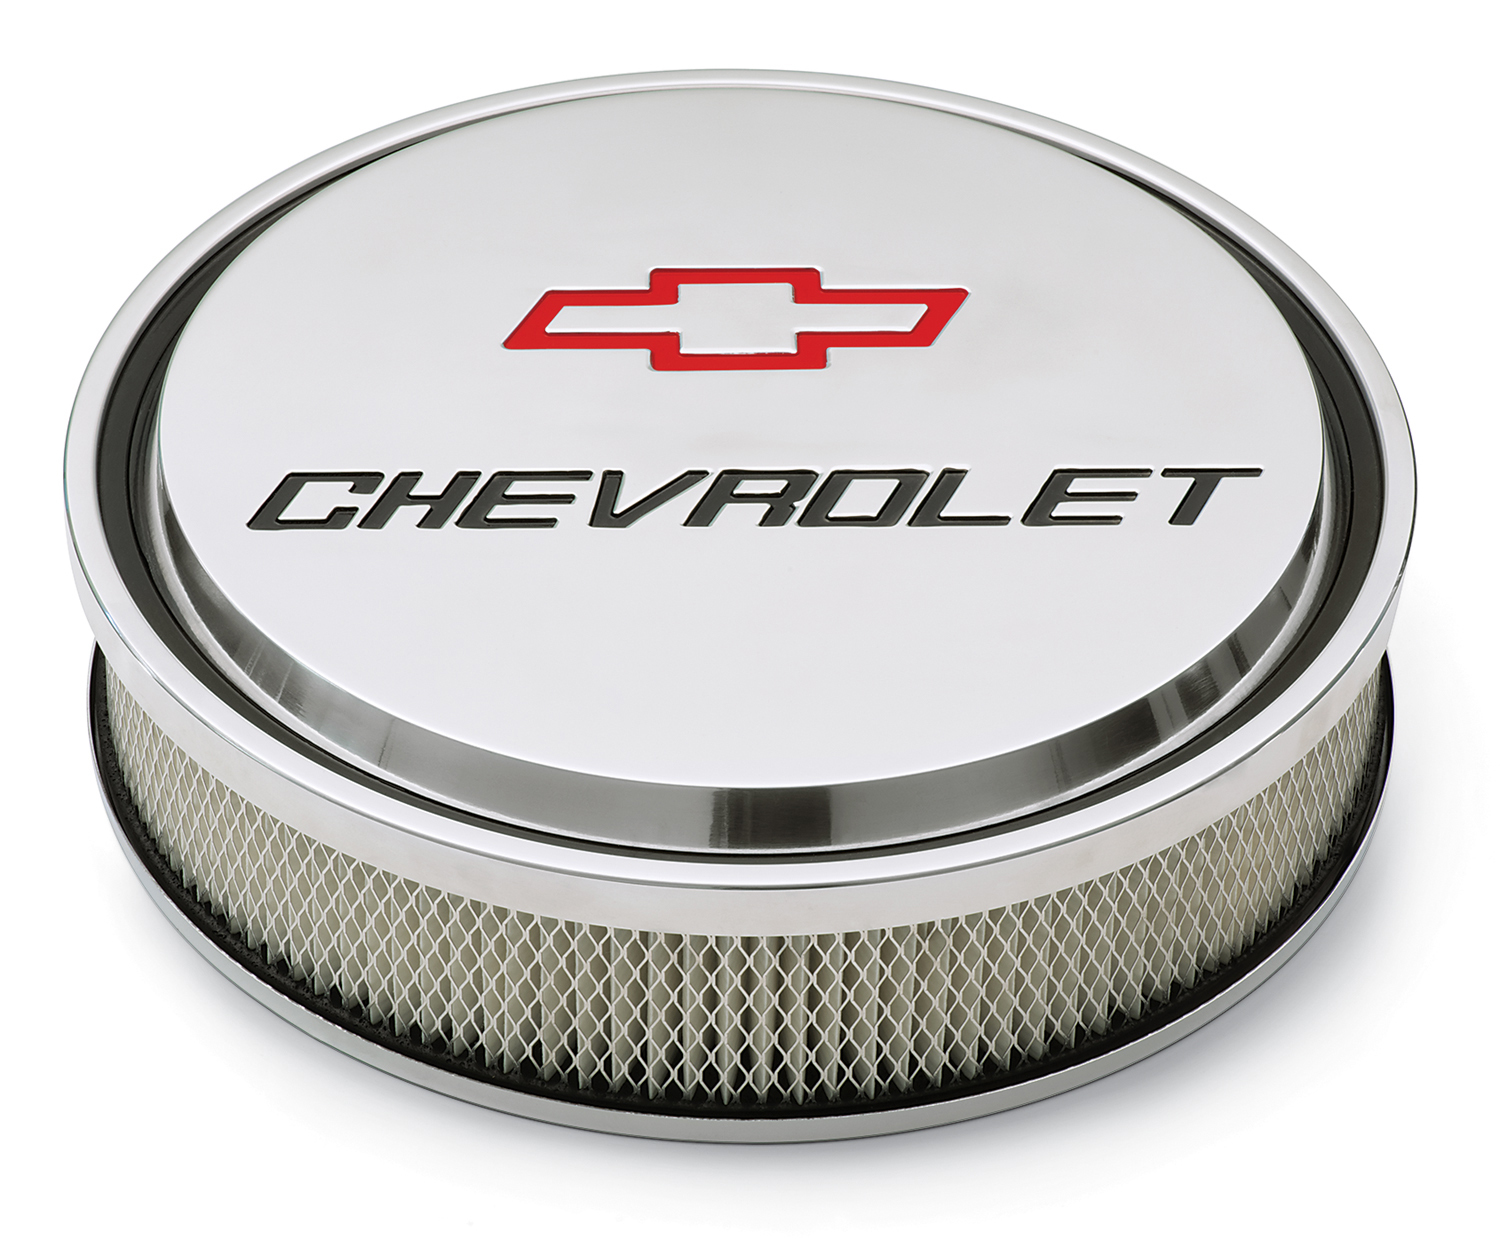 Proform 14 Inch Air Cleaner Kit Alunimum Polished Recessed Chevy and Bowtie Emblems Chevrolet Performance Parts